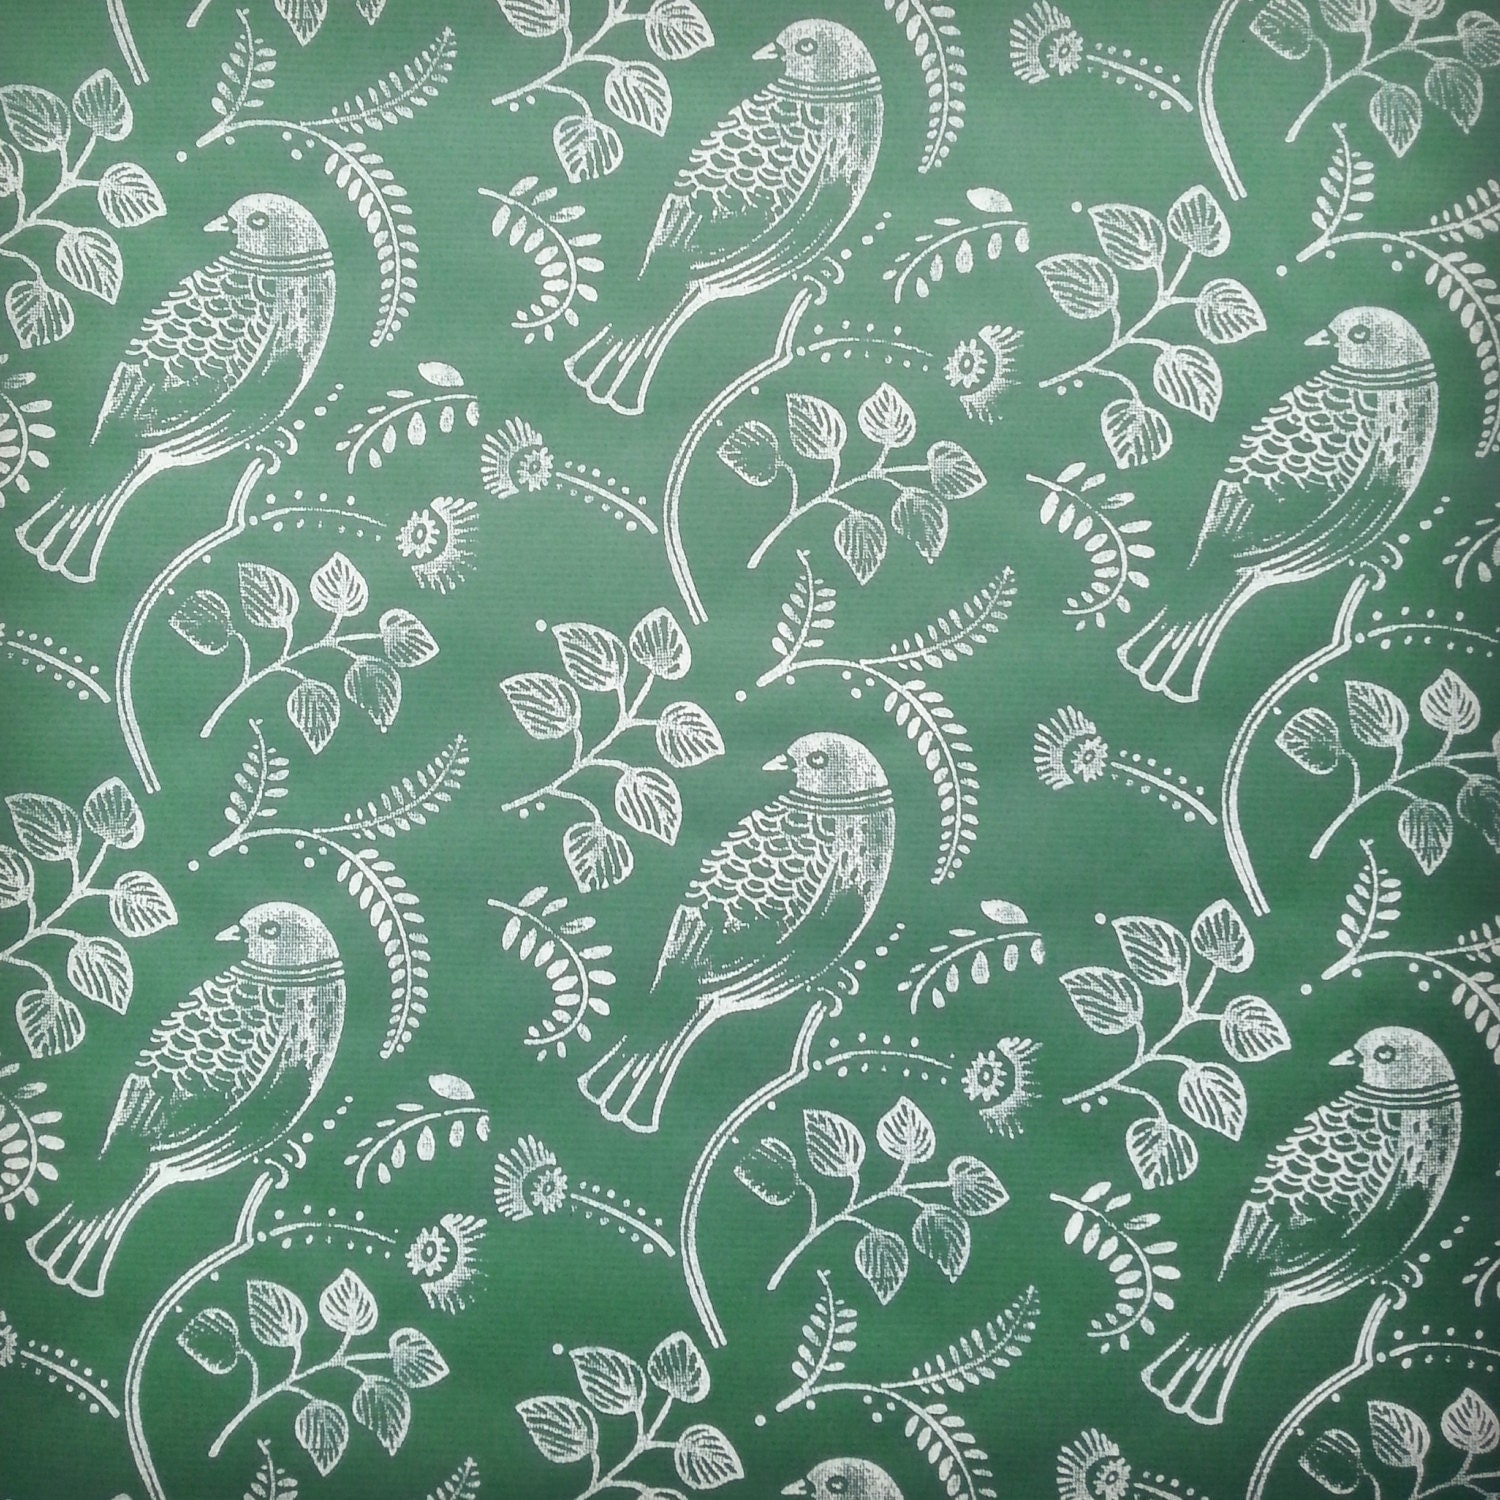 wrapping paper green - photo #16